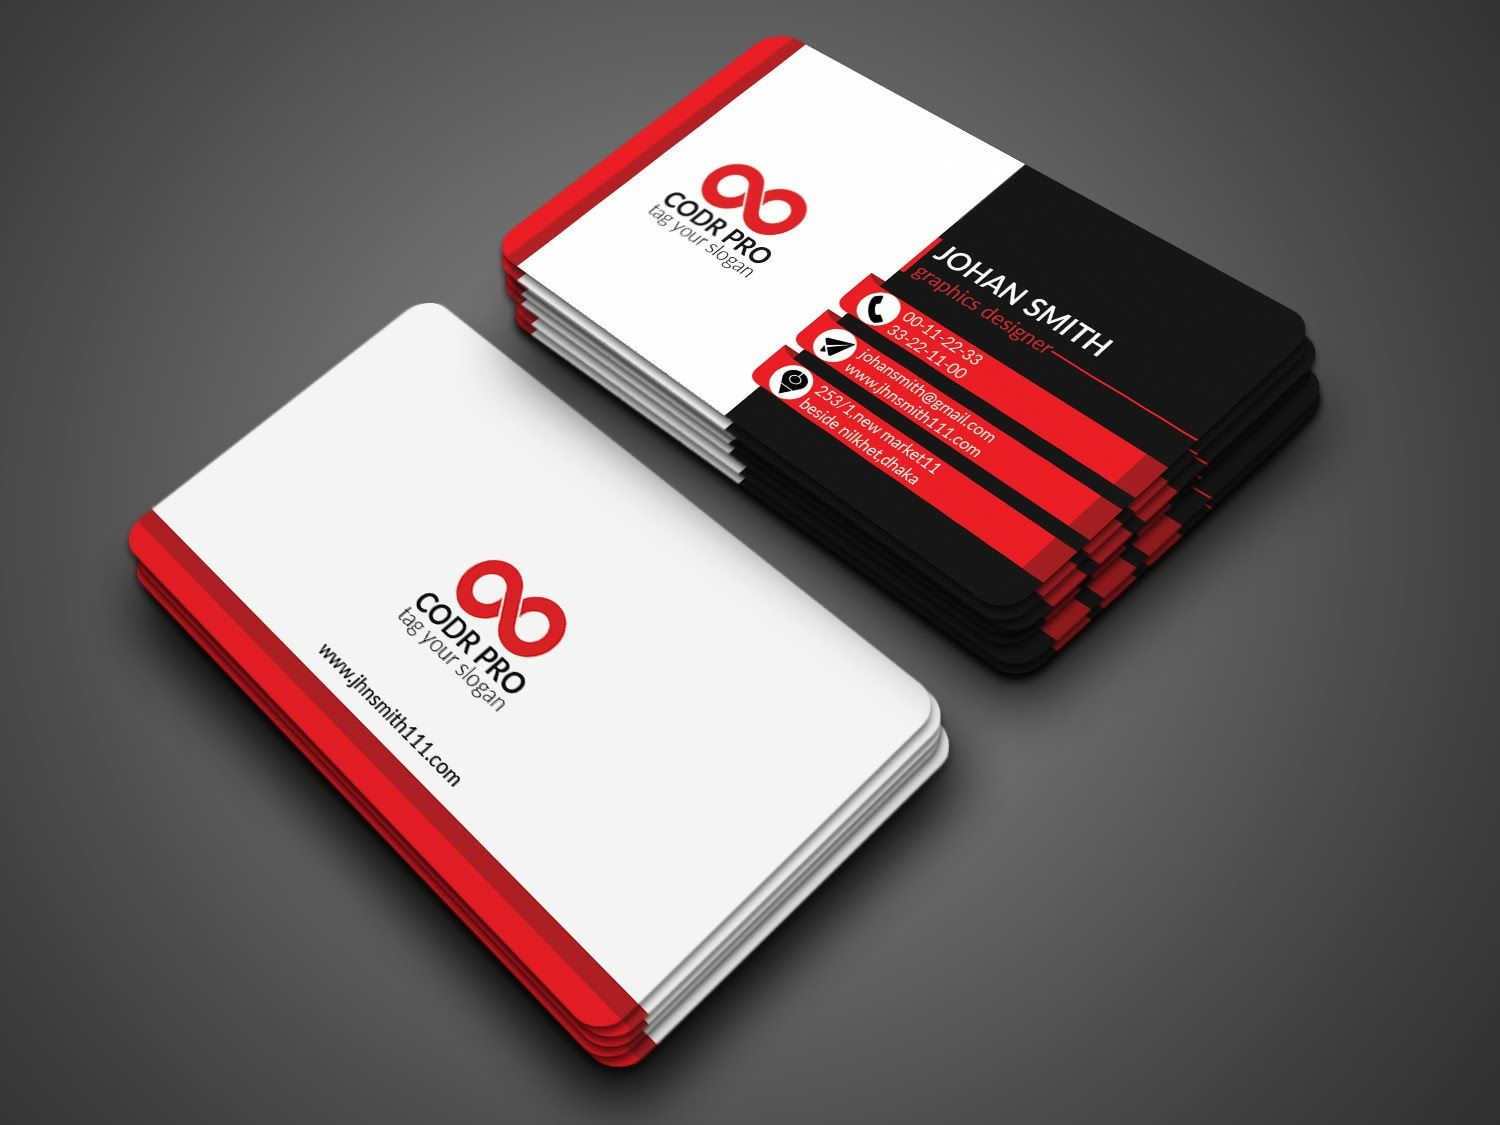 Professional Business Card Design In Photoshop Cs6 Tutorial